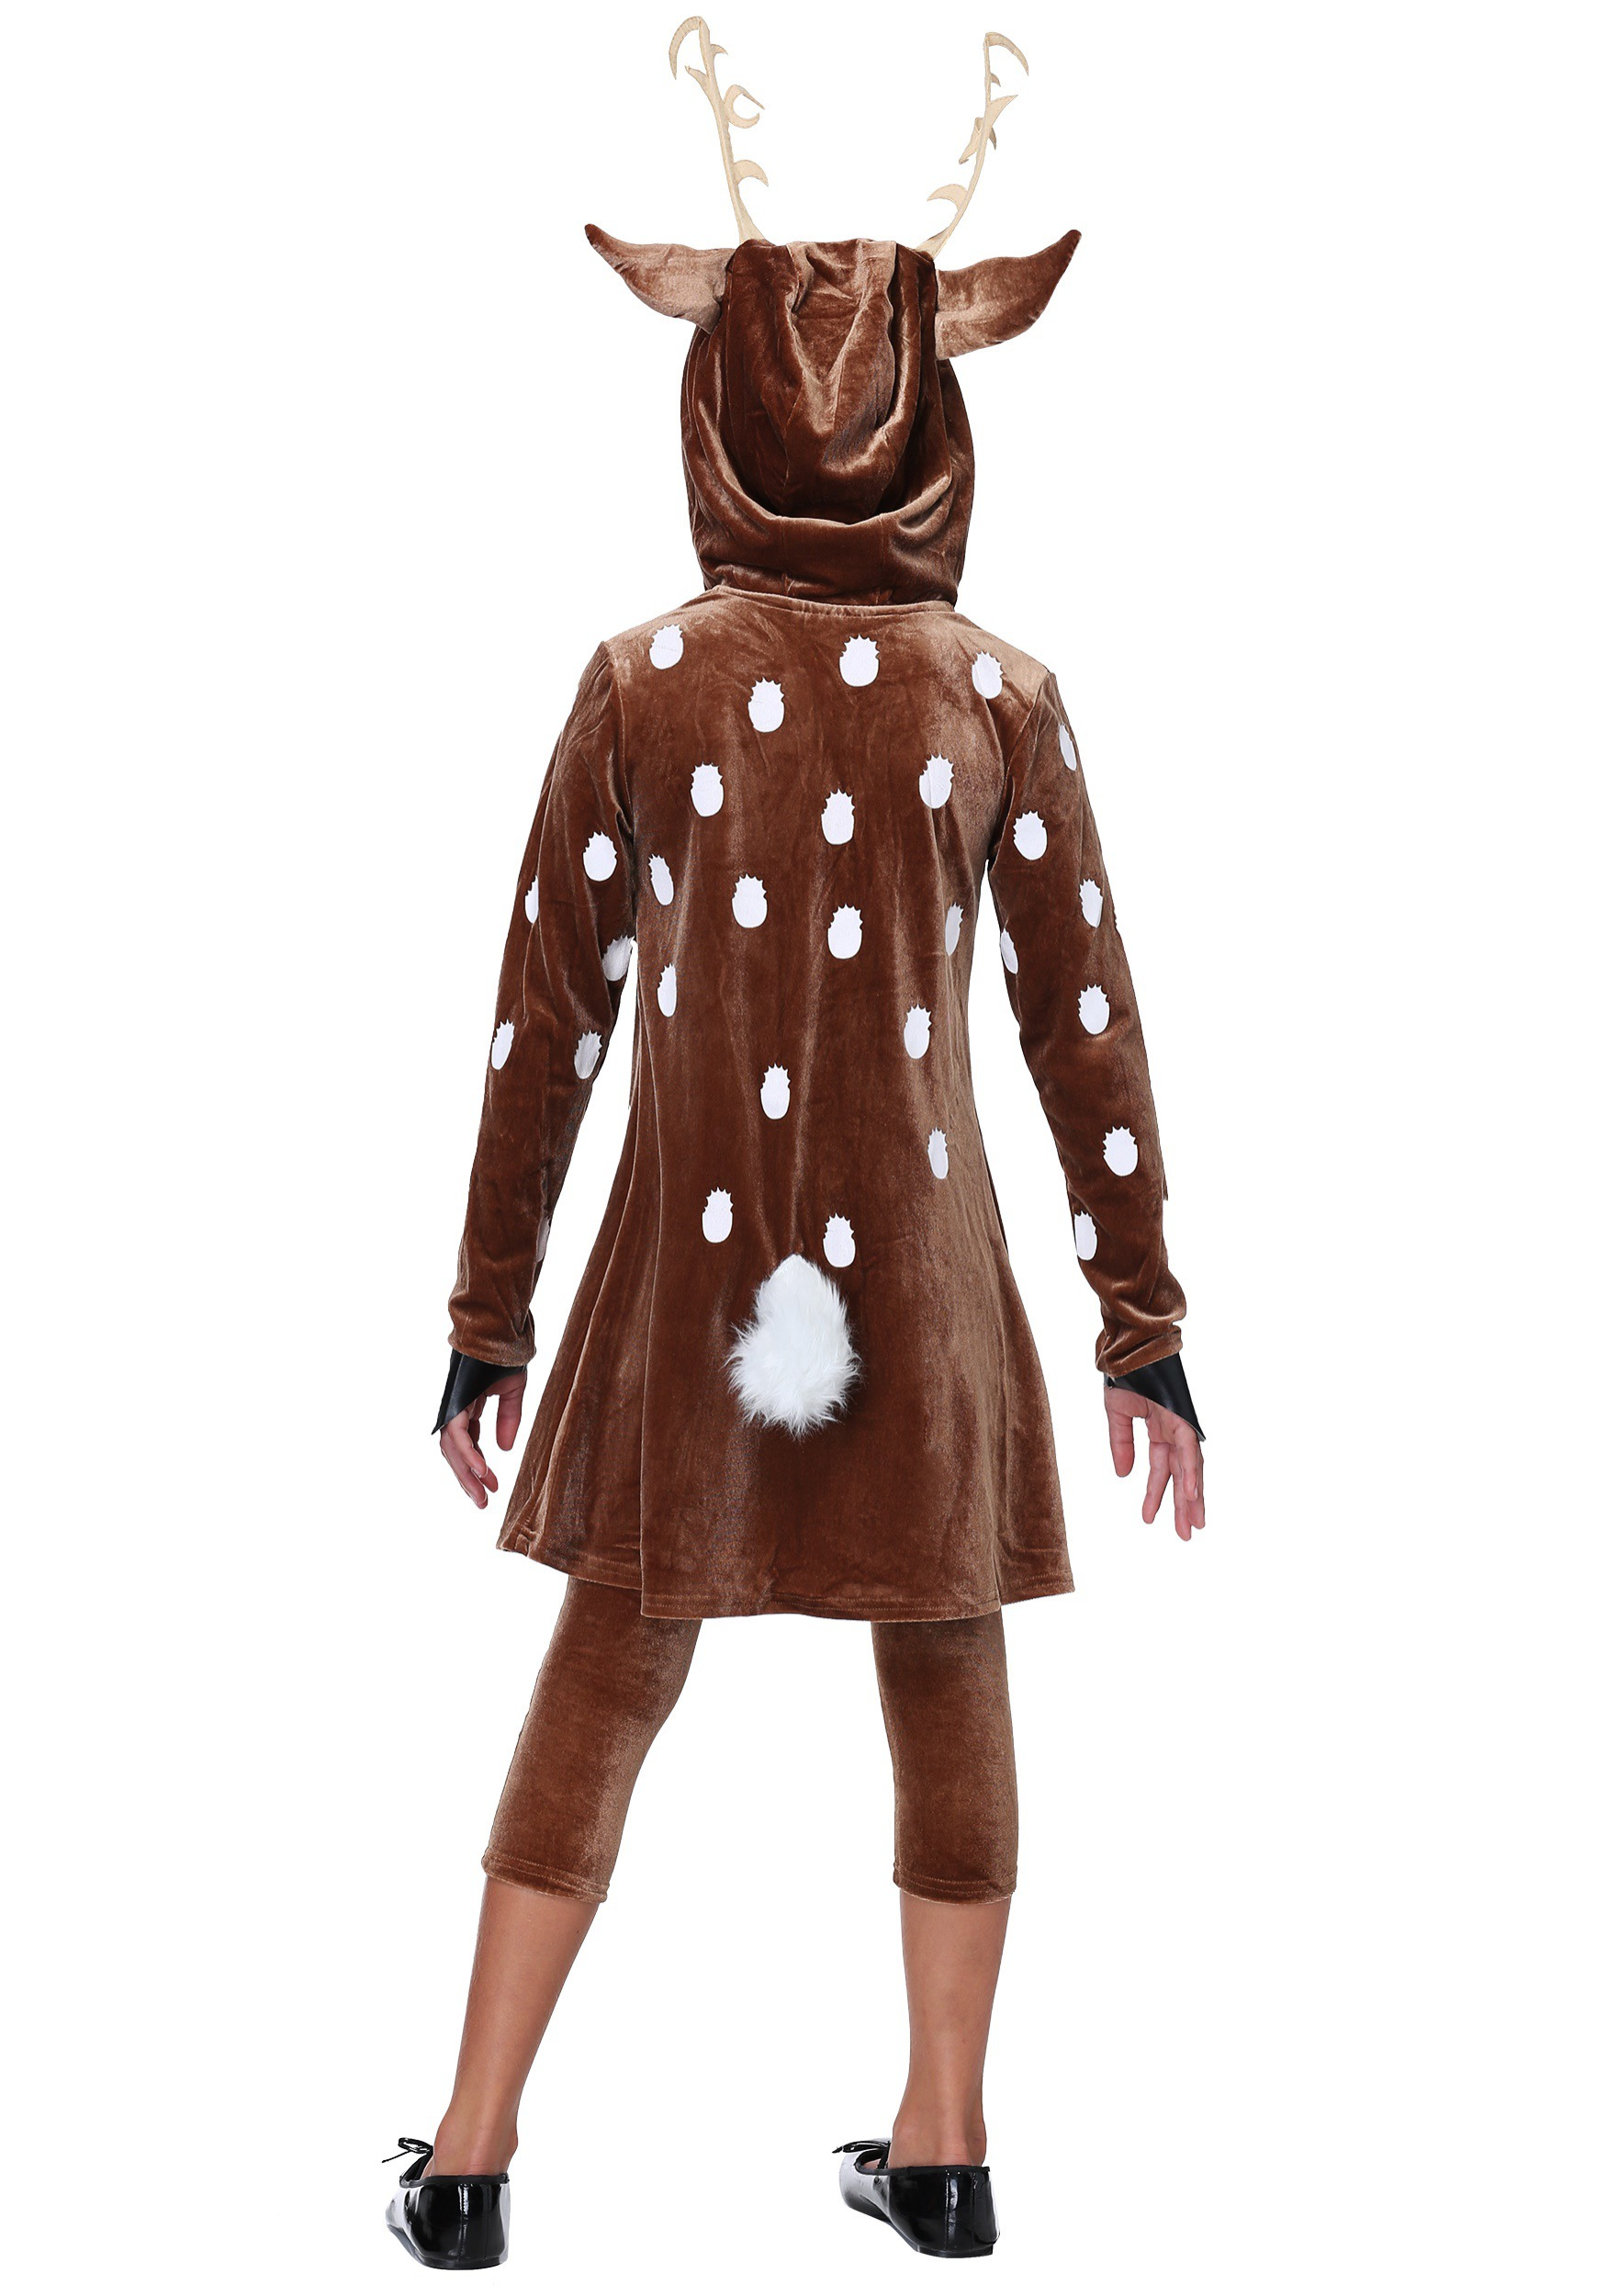 Girls Fawn Costume Girls Fawn Costume  sc 1 st  Halloween Costumes UK & Fawn Costume for Girls